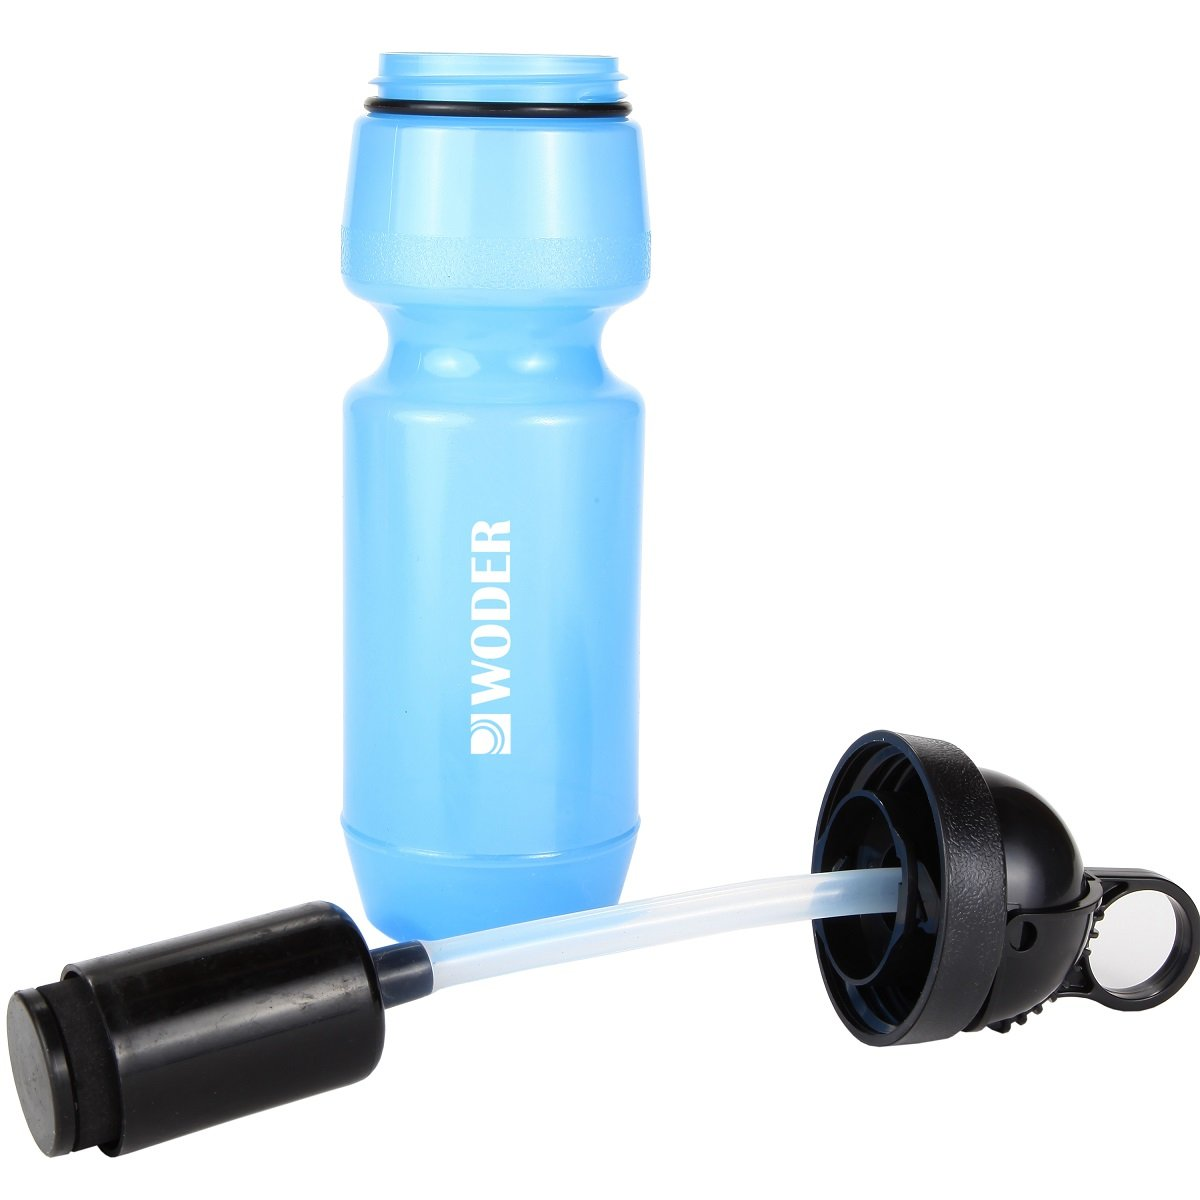 Woder 24-Sur Survival Water Filter Bottle w High Performance Ionic Filtration System - 100Gal Cartridge Capacity - Made in USA - 24oz. BPA Free